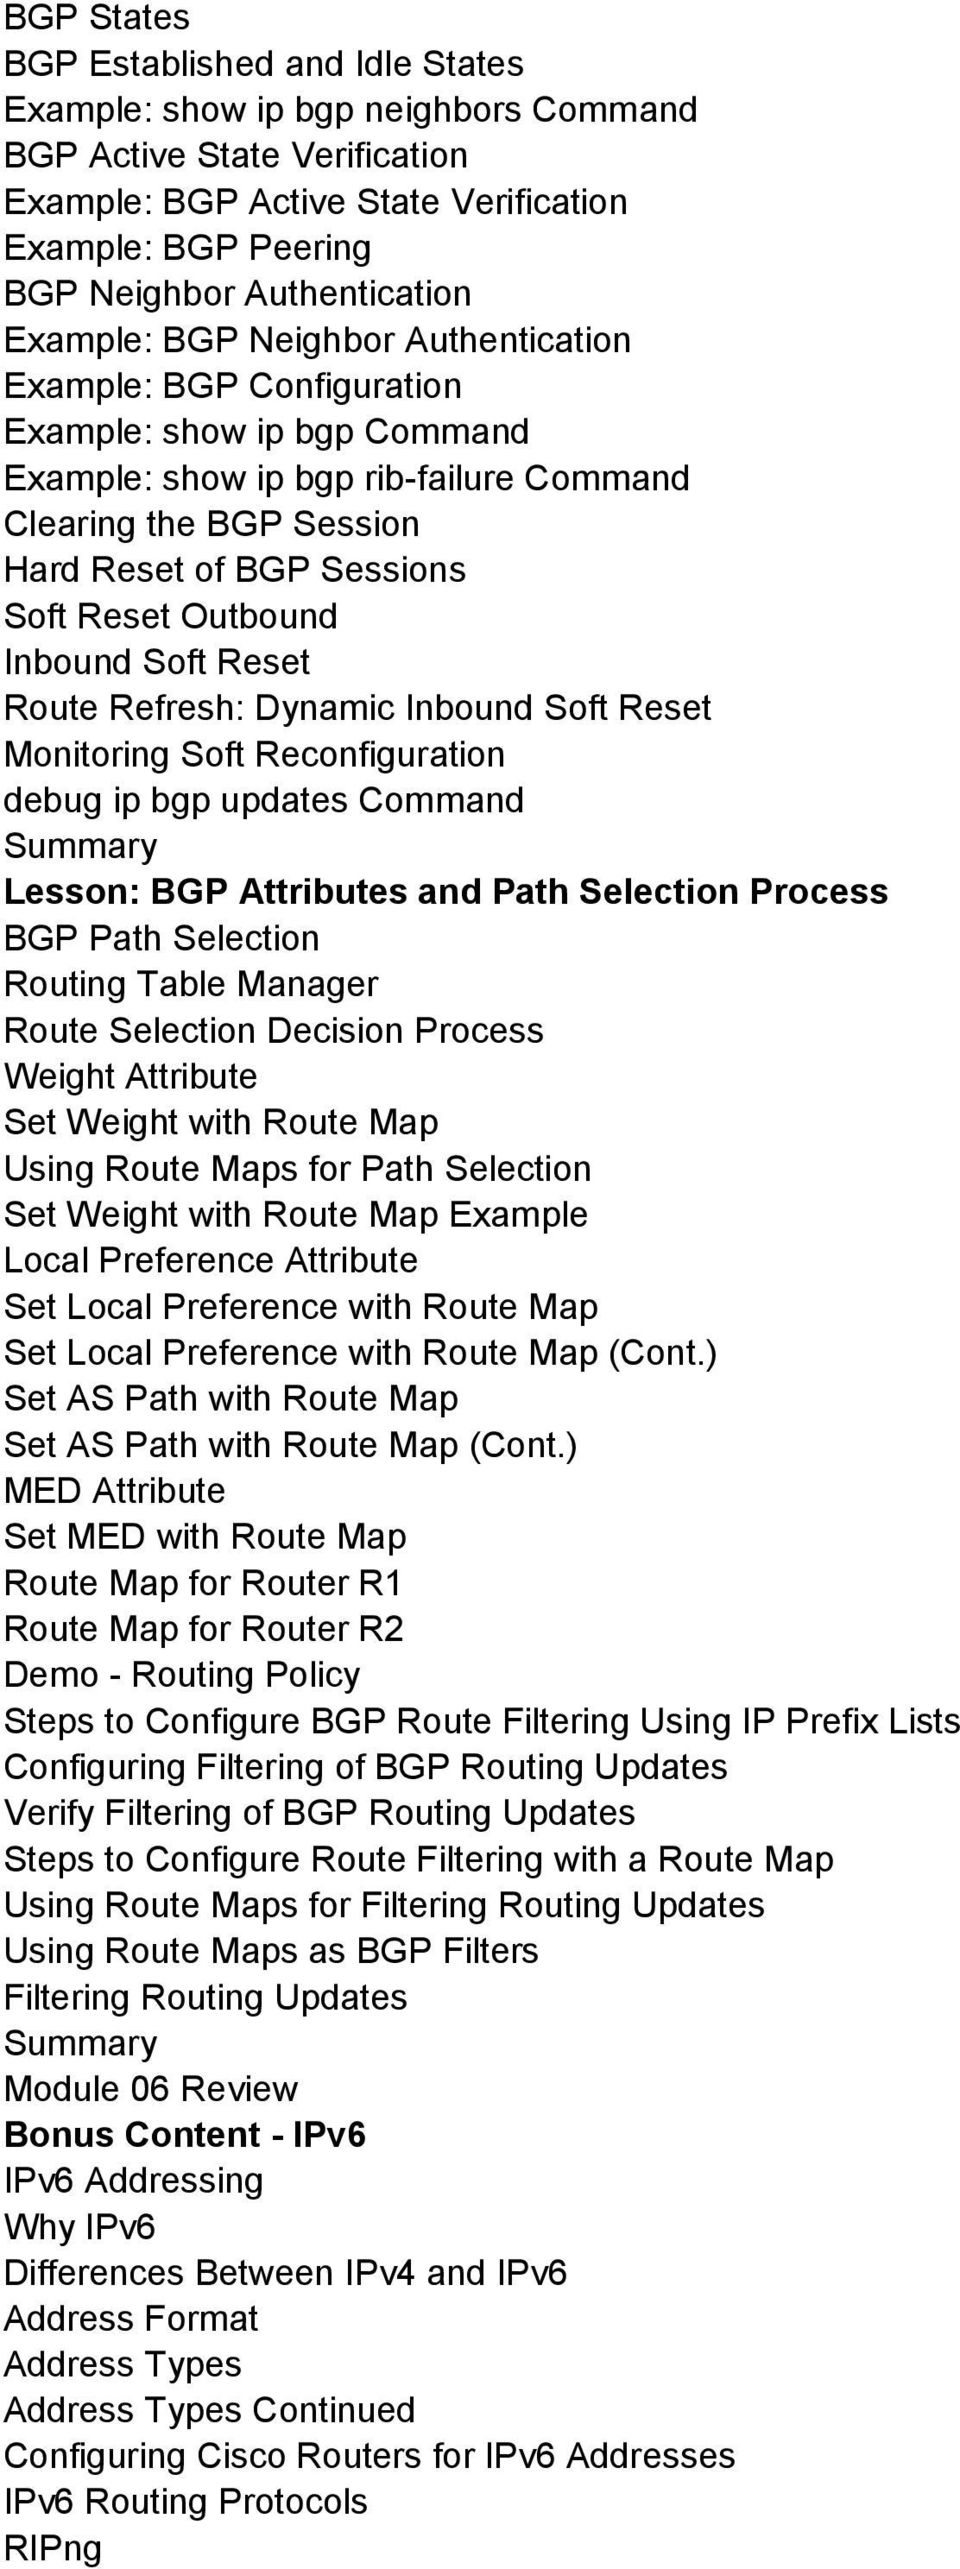 Outbound Inbound Soft Reset Route Refresh: Dynamic Inbound Soft Reset Monitoring Soft Reconfiguration debug ip bgp updates Command Lesson: BGP Attributes and Path Selection Process BGP Path Selection